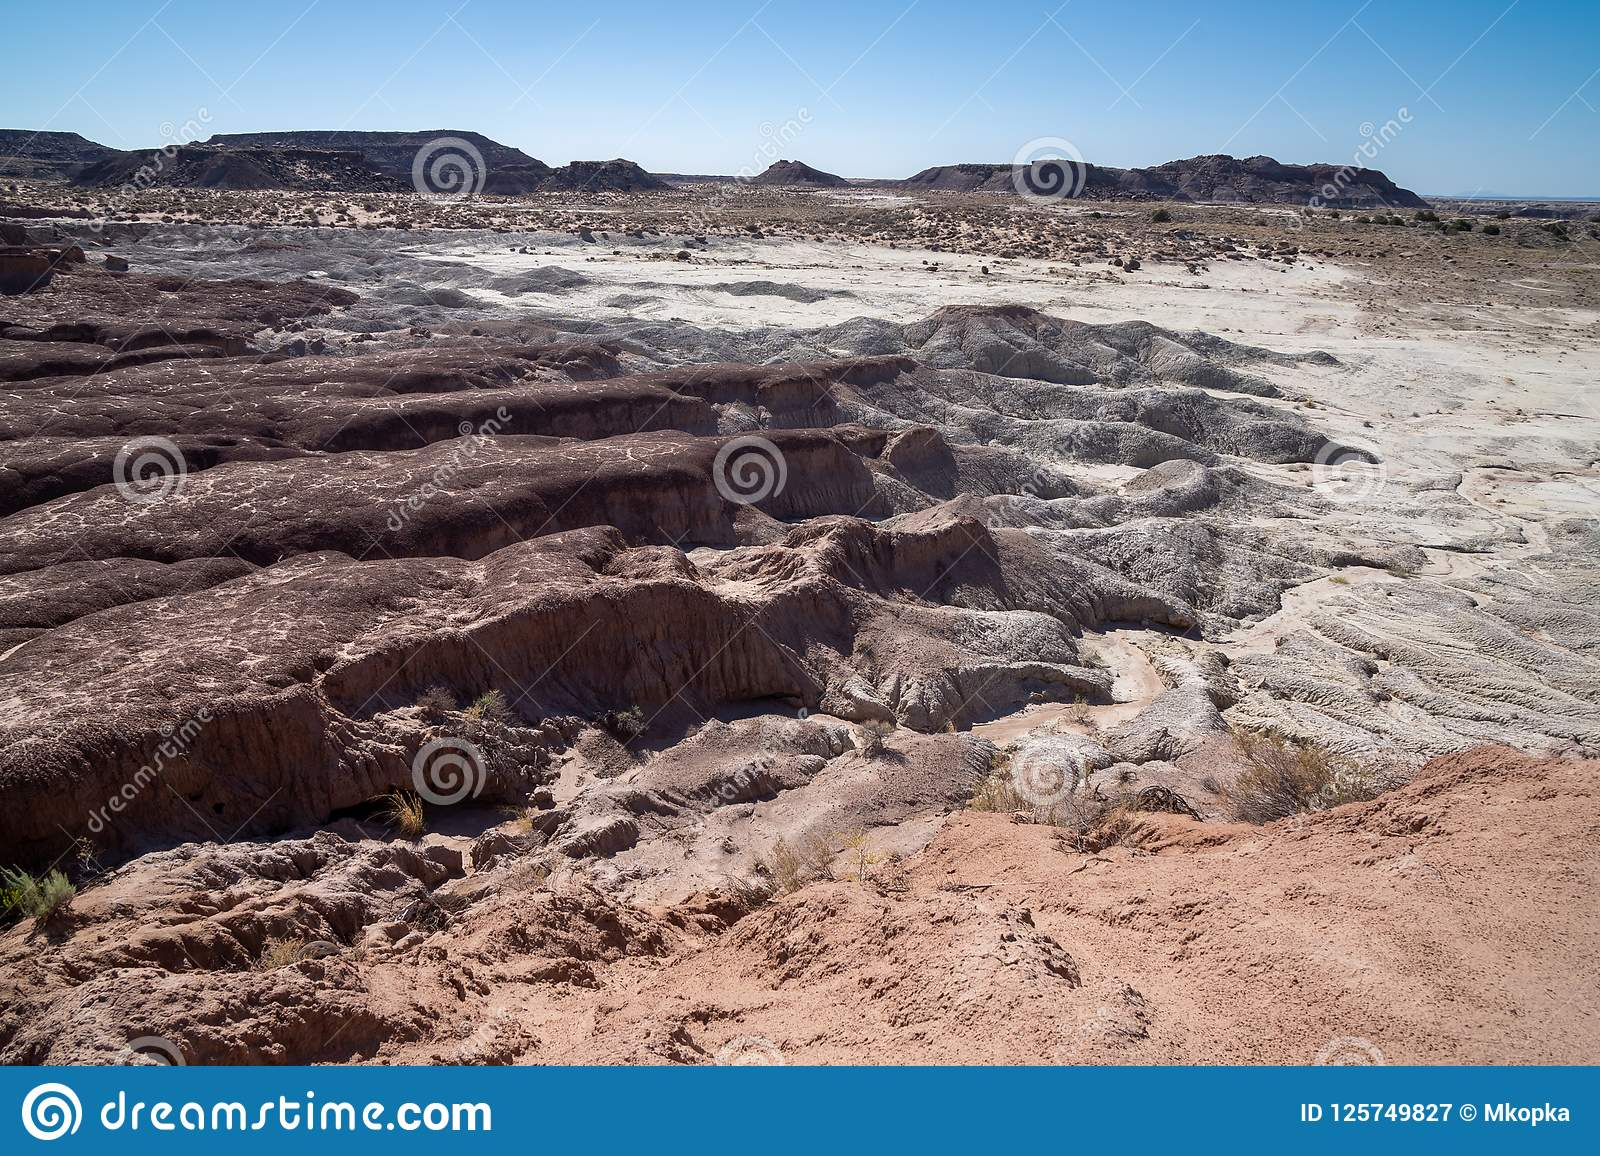 Petrified Forest National Park in the Four Corners area of Arizona